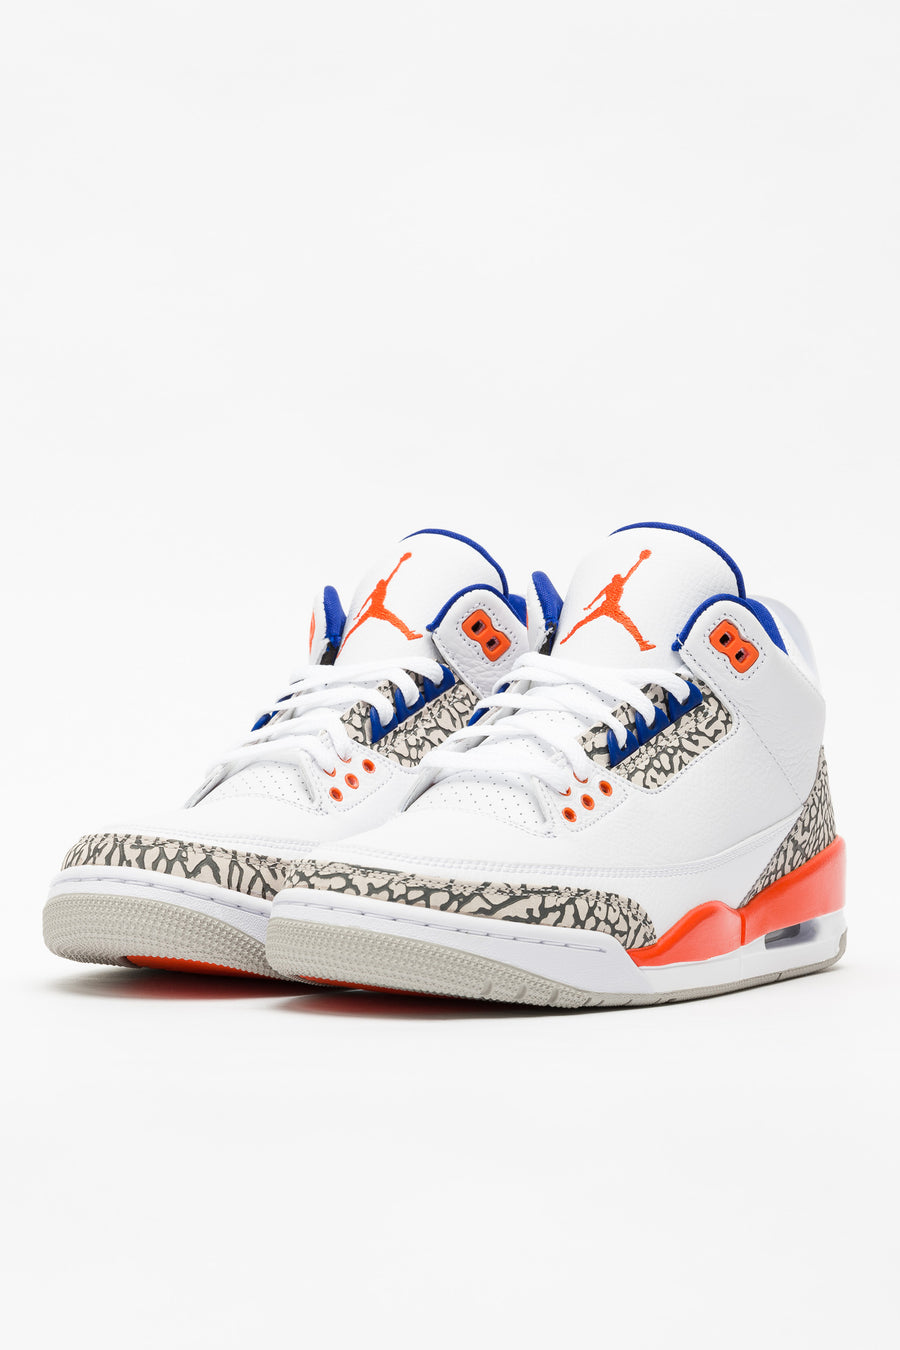 Jordan Jordan 3 Retro in White/Old Royal - Notre